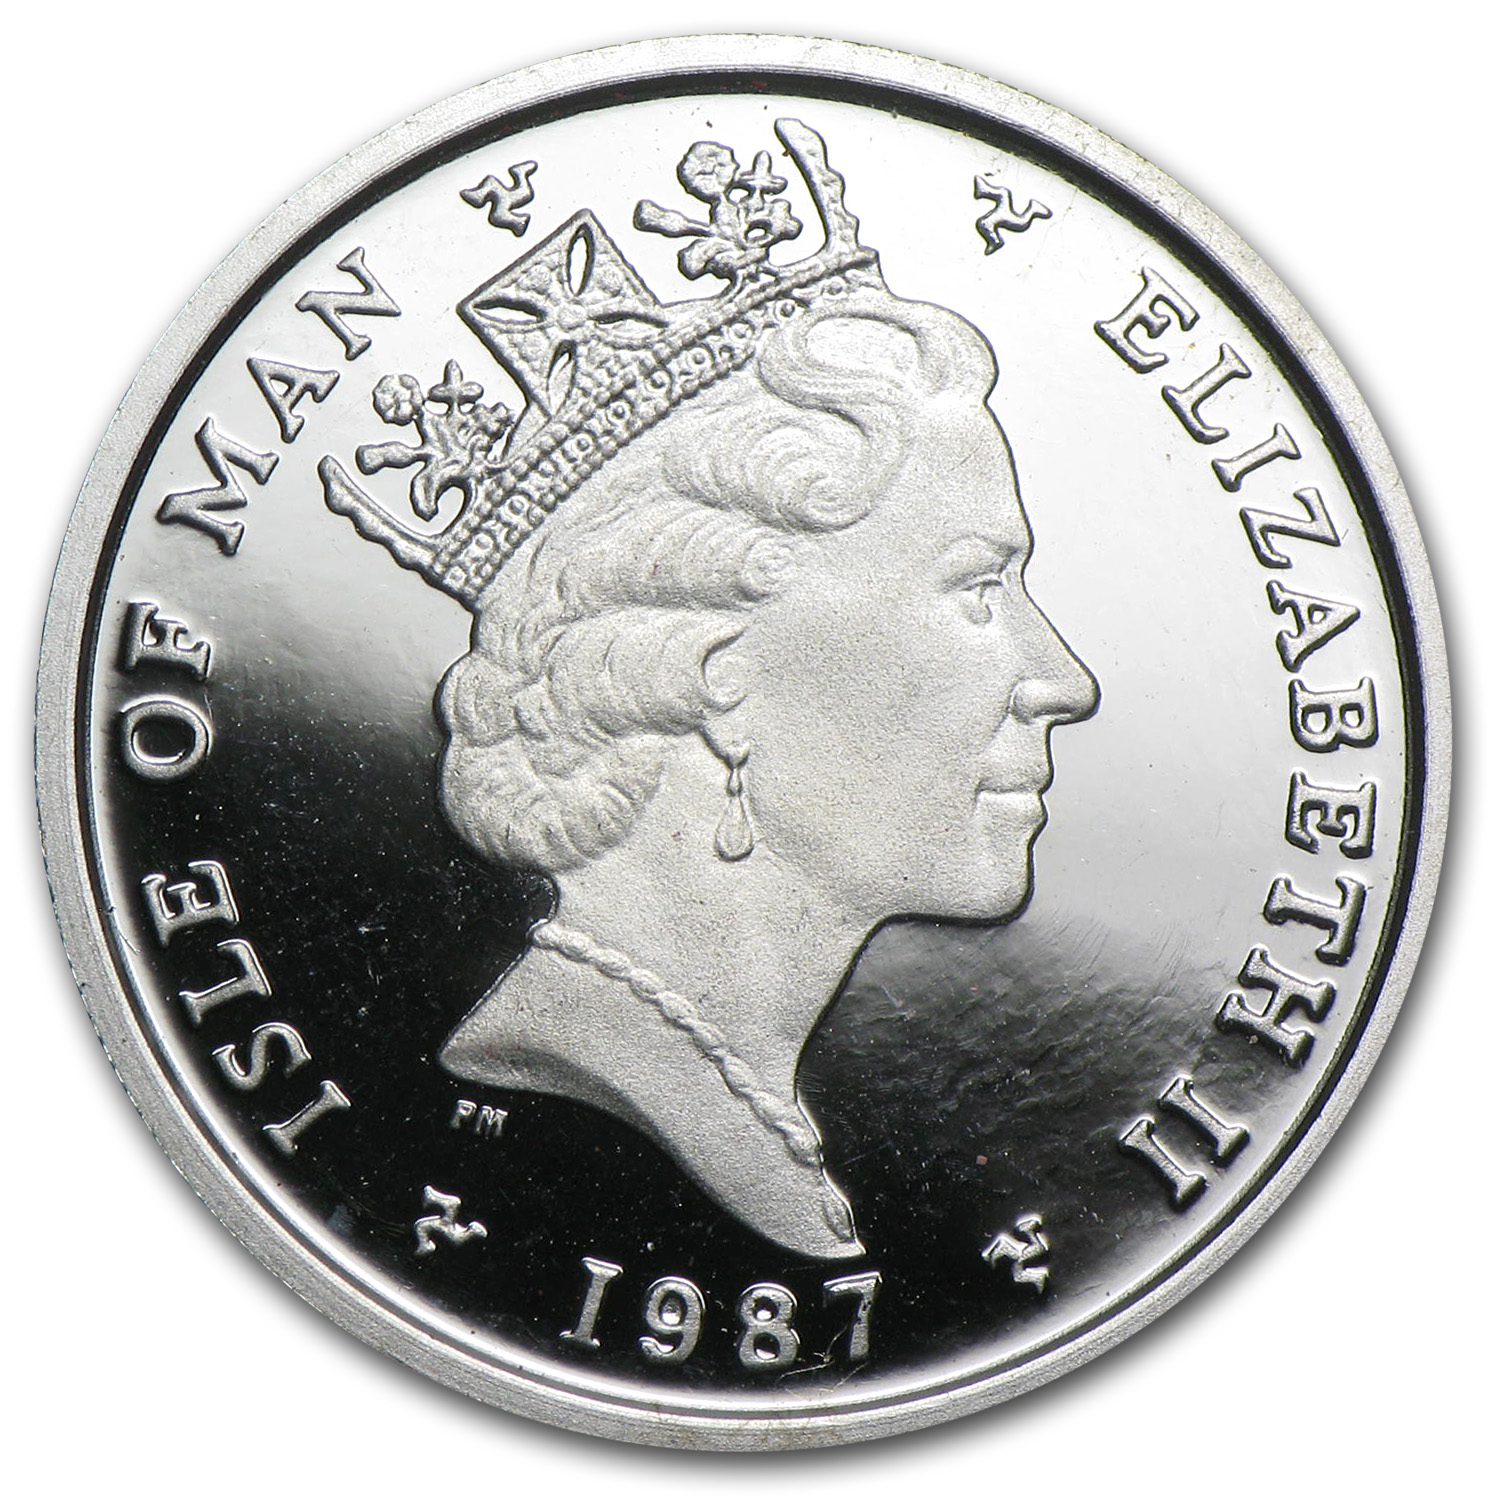 1987 Isle of Man 1/4 oz Proof Platinum Noble (Privy)